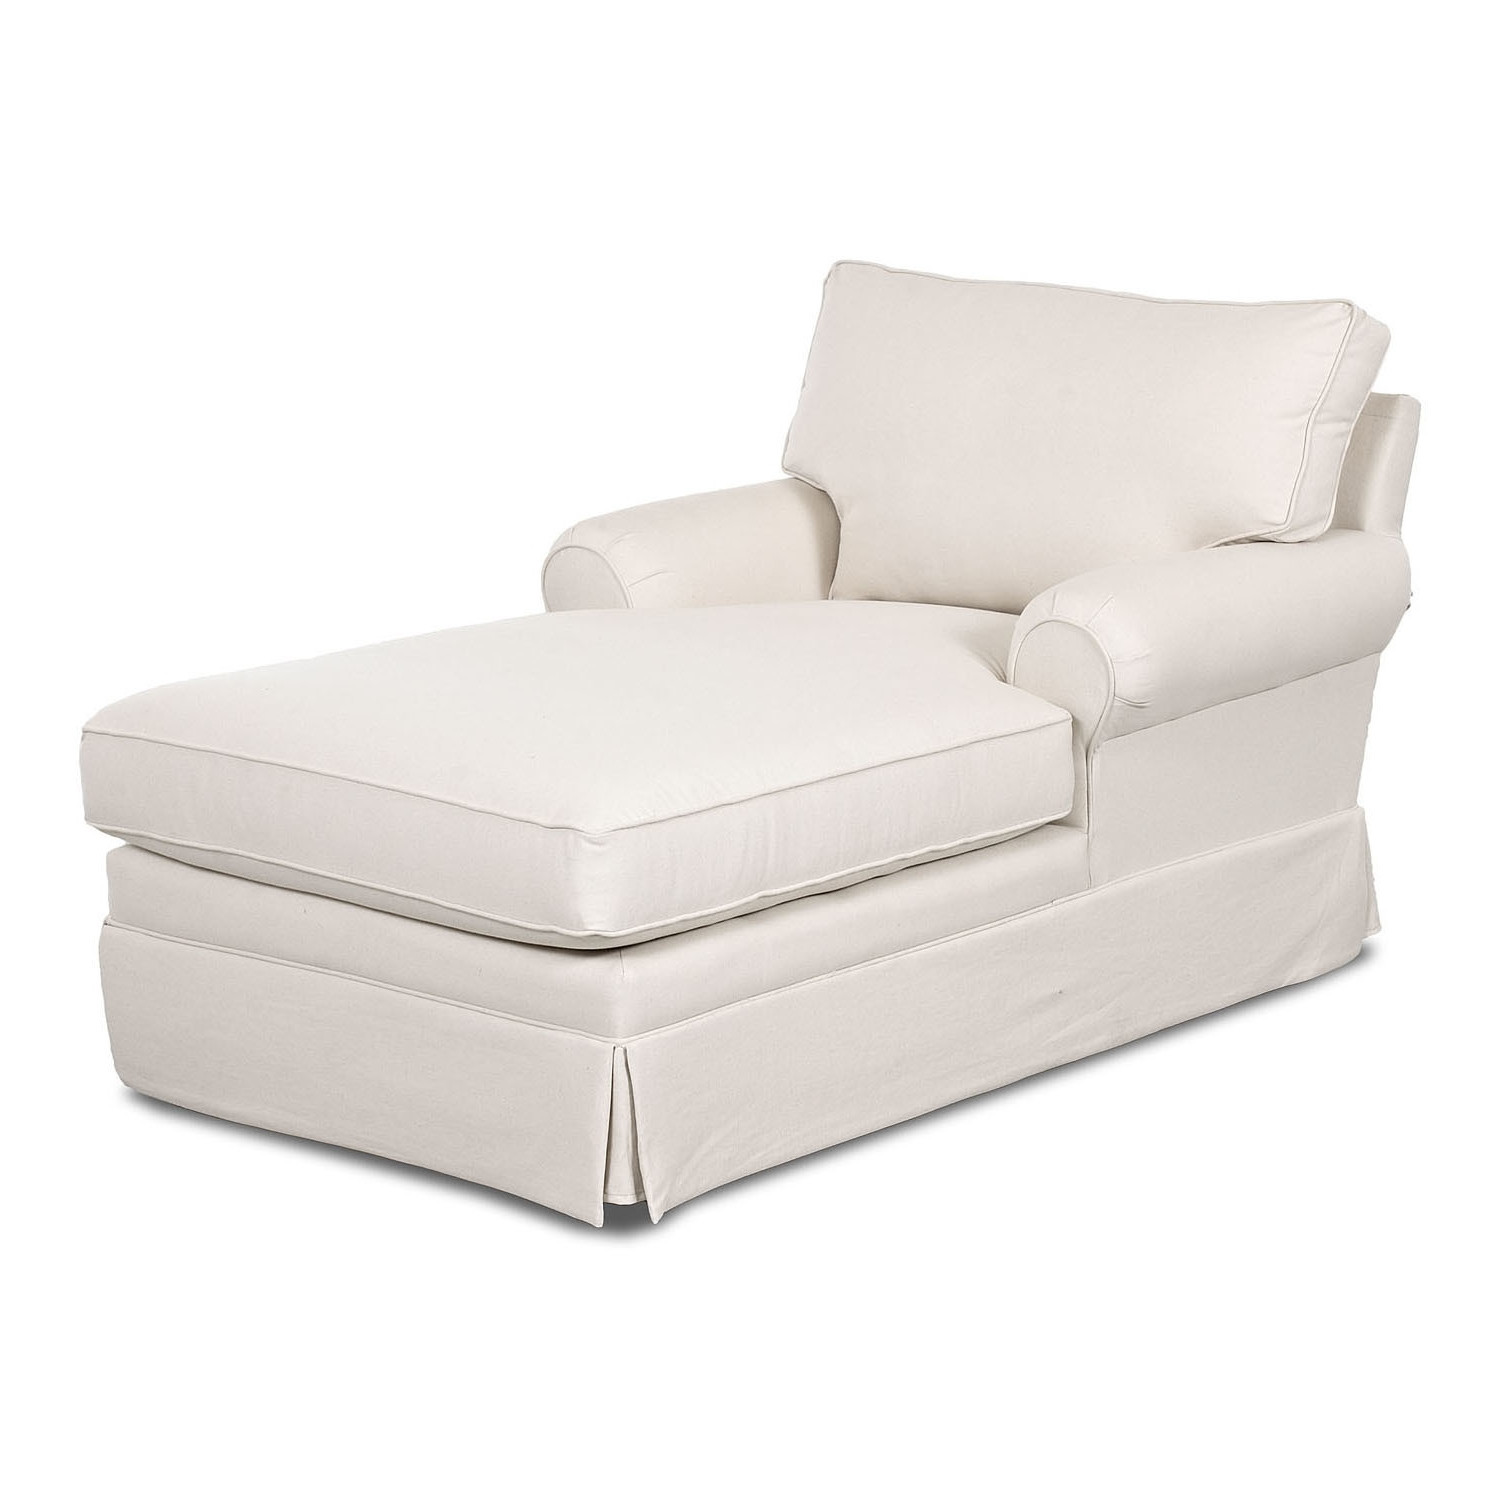 Nice Chaise Lounge Slipcover With Decor Comfortable Lounge Chair With Most Up To Date Chaise Lounge Chairs With Arms Slipcover (View 2 of 15)